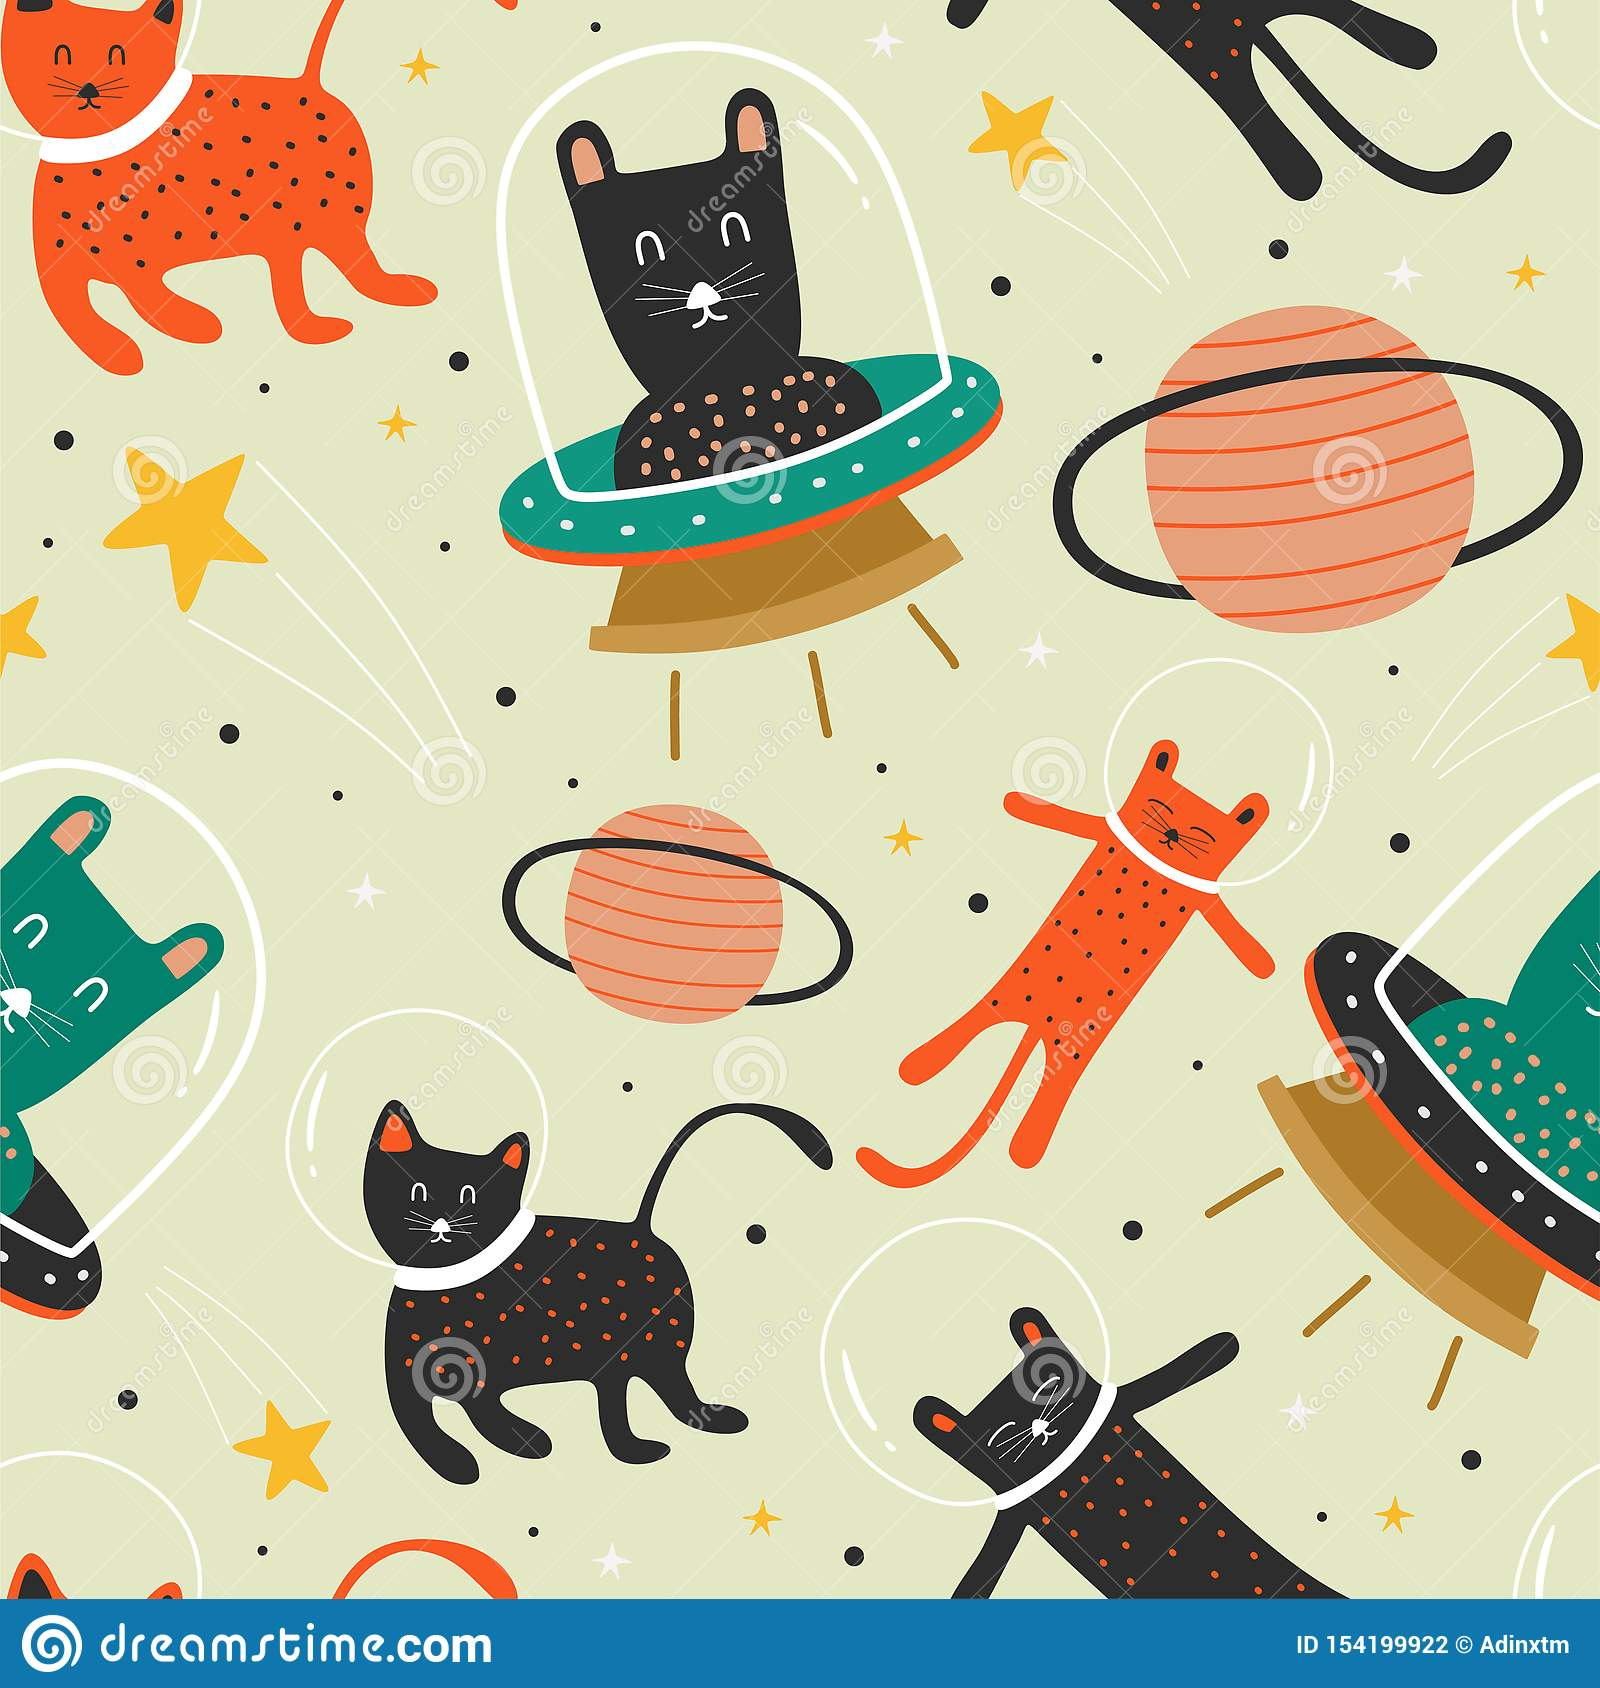 cat pattern with ufo. astronaut and planet background decoration for baby and kids fashion textile print